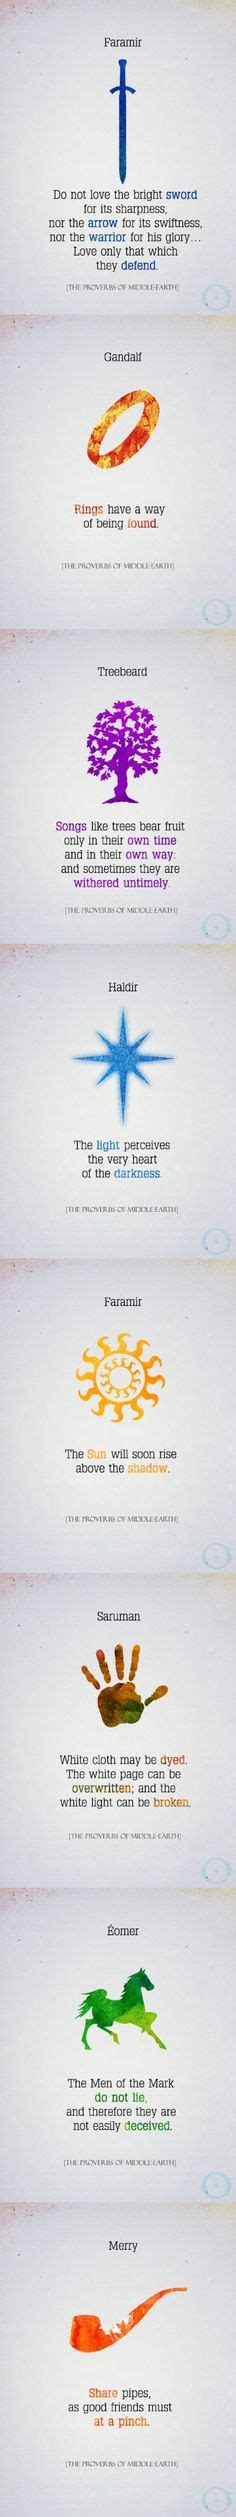 The Proverbs Of Middle Earth 1000 images about book on ready player